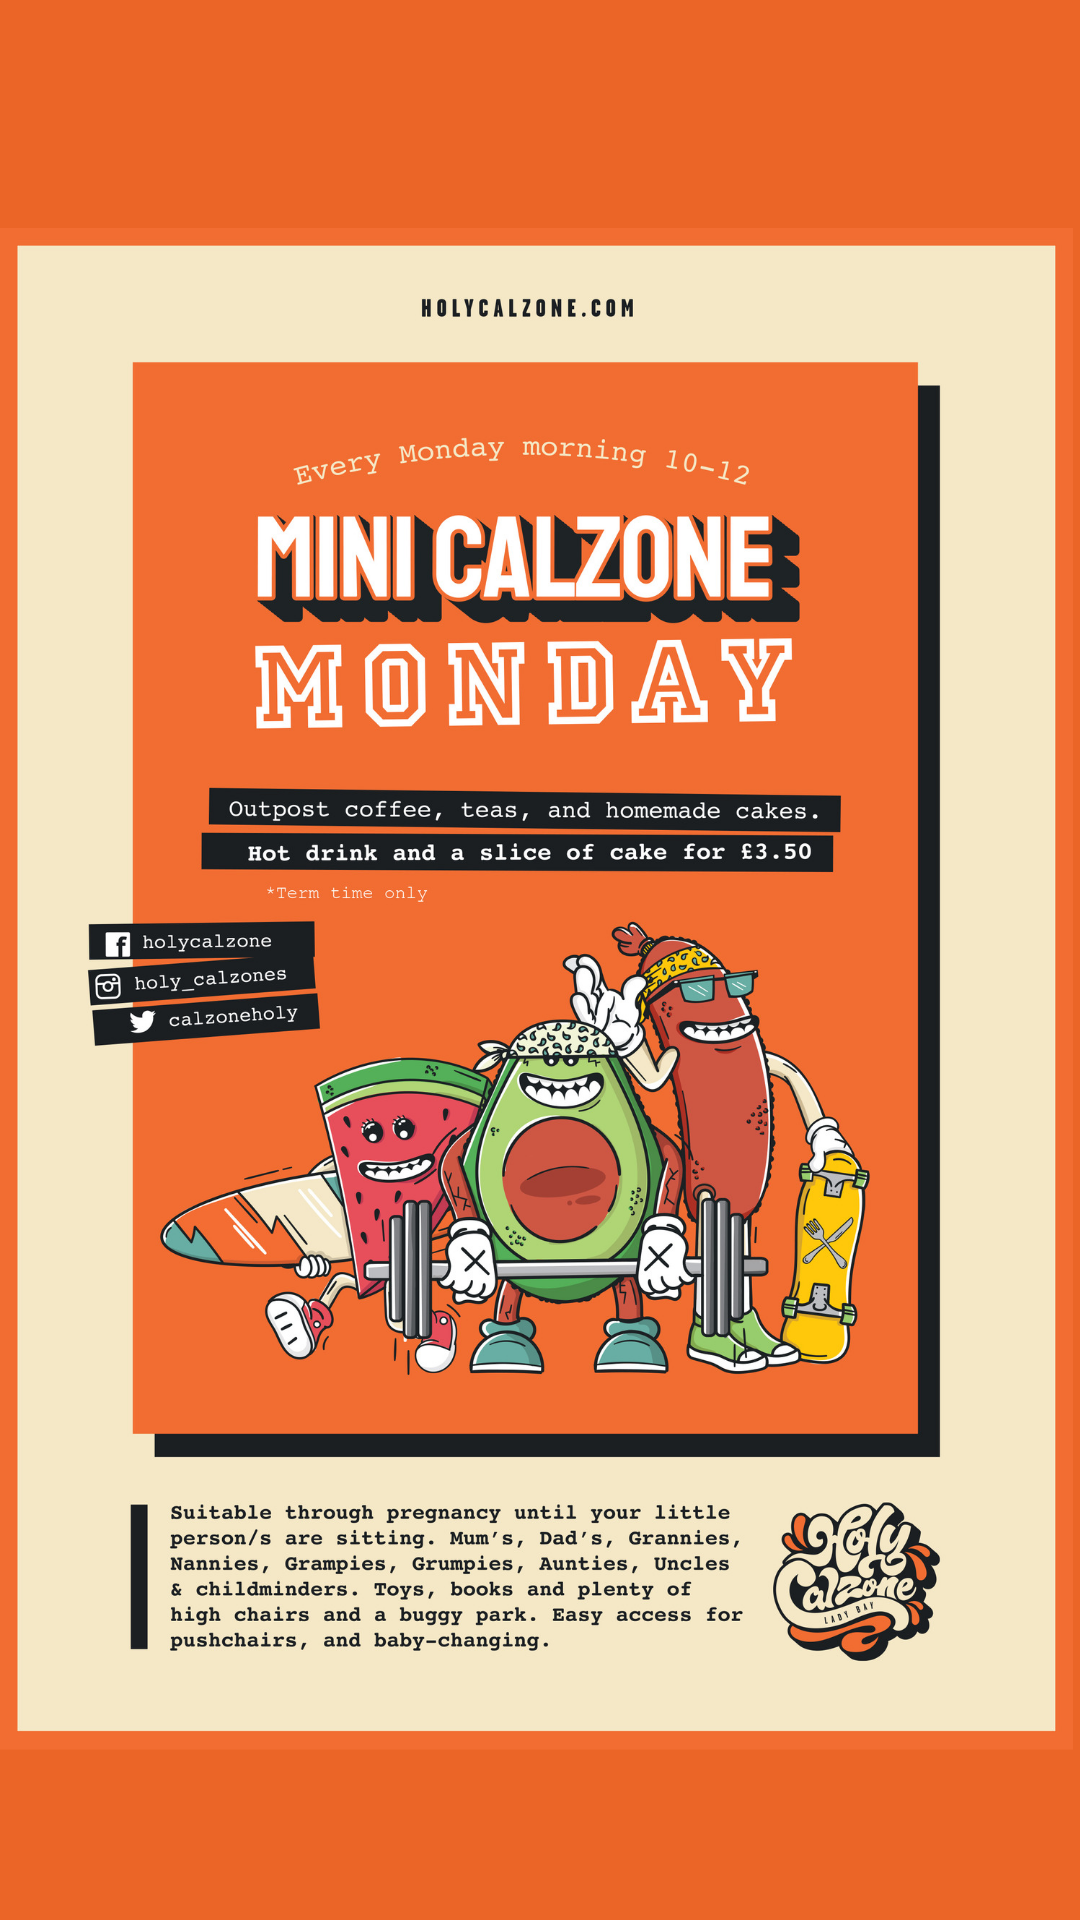 Mini Calzone Monday.png